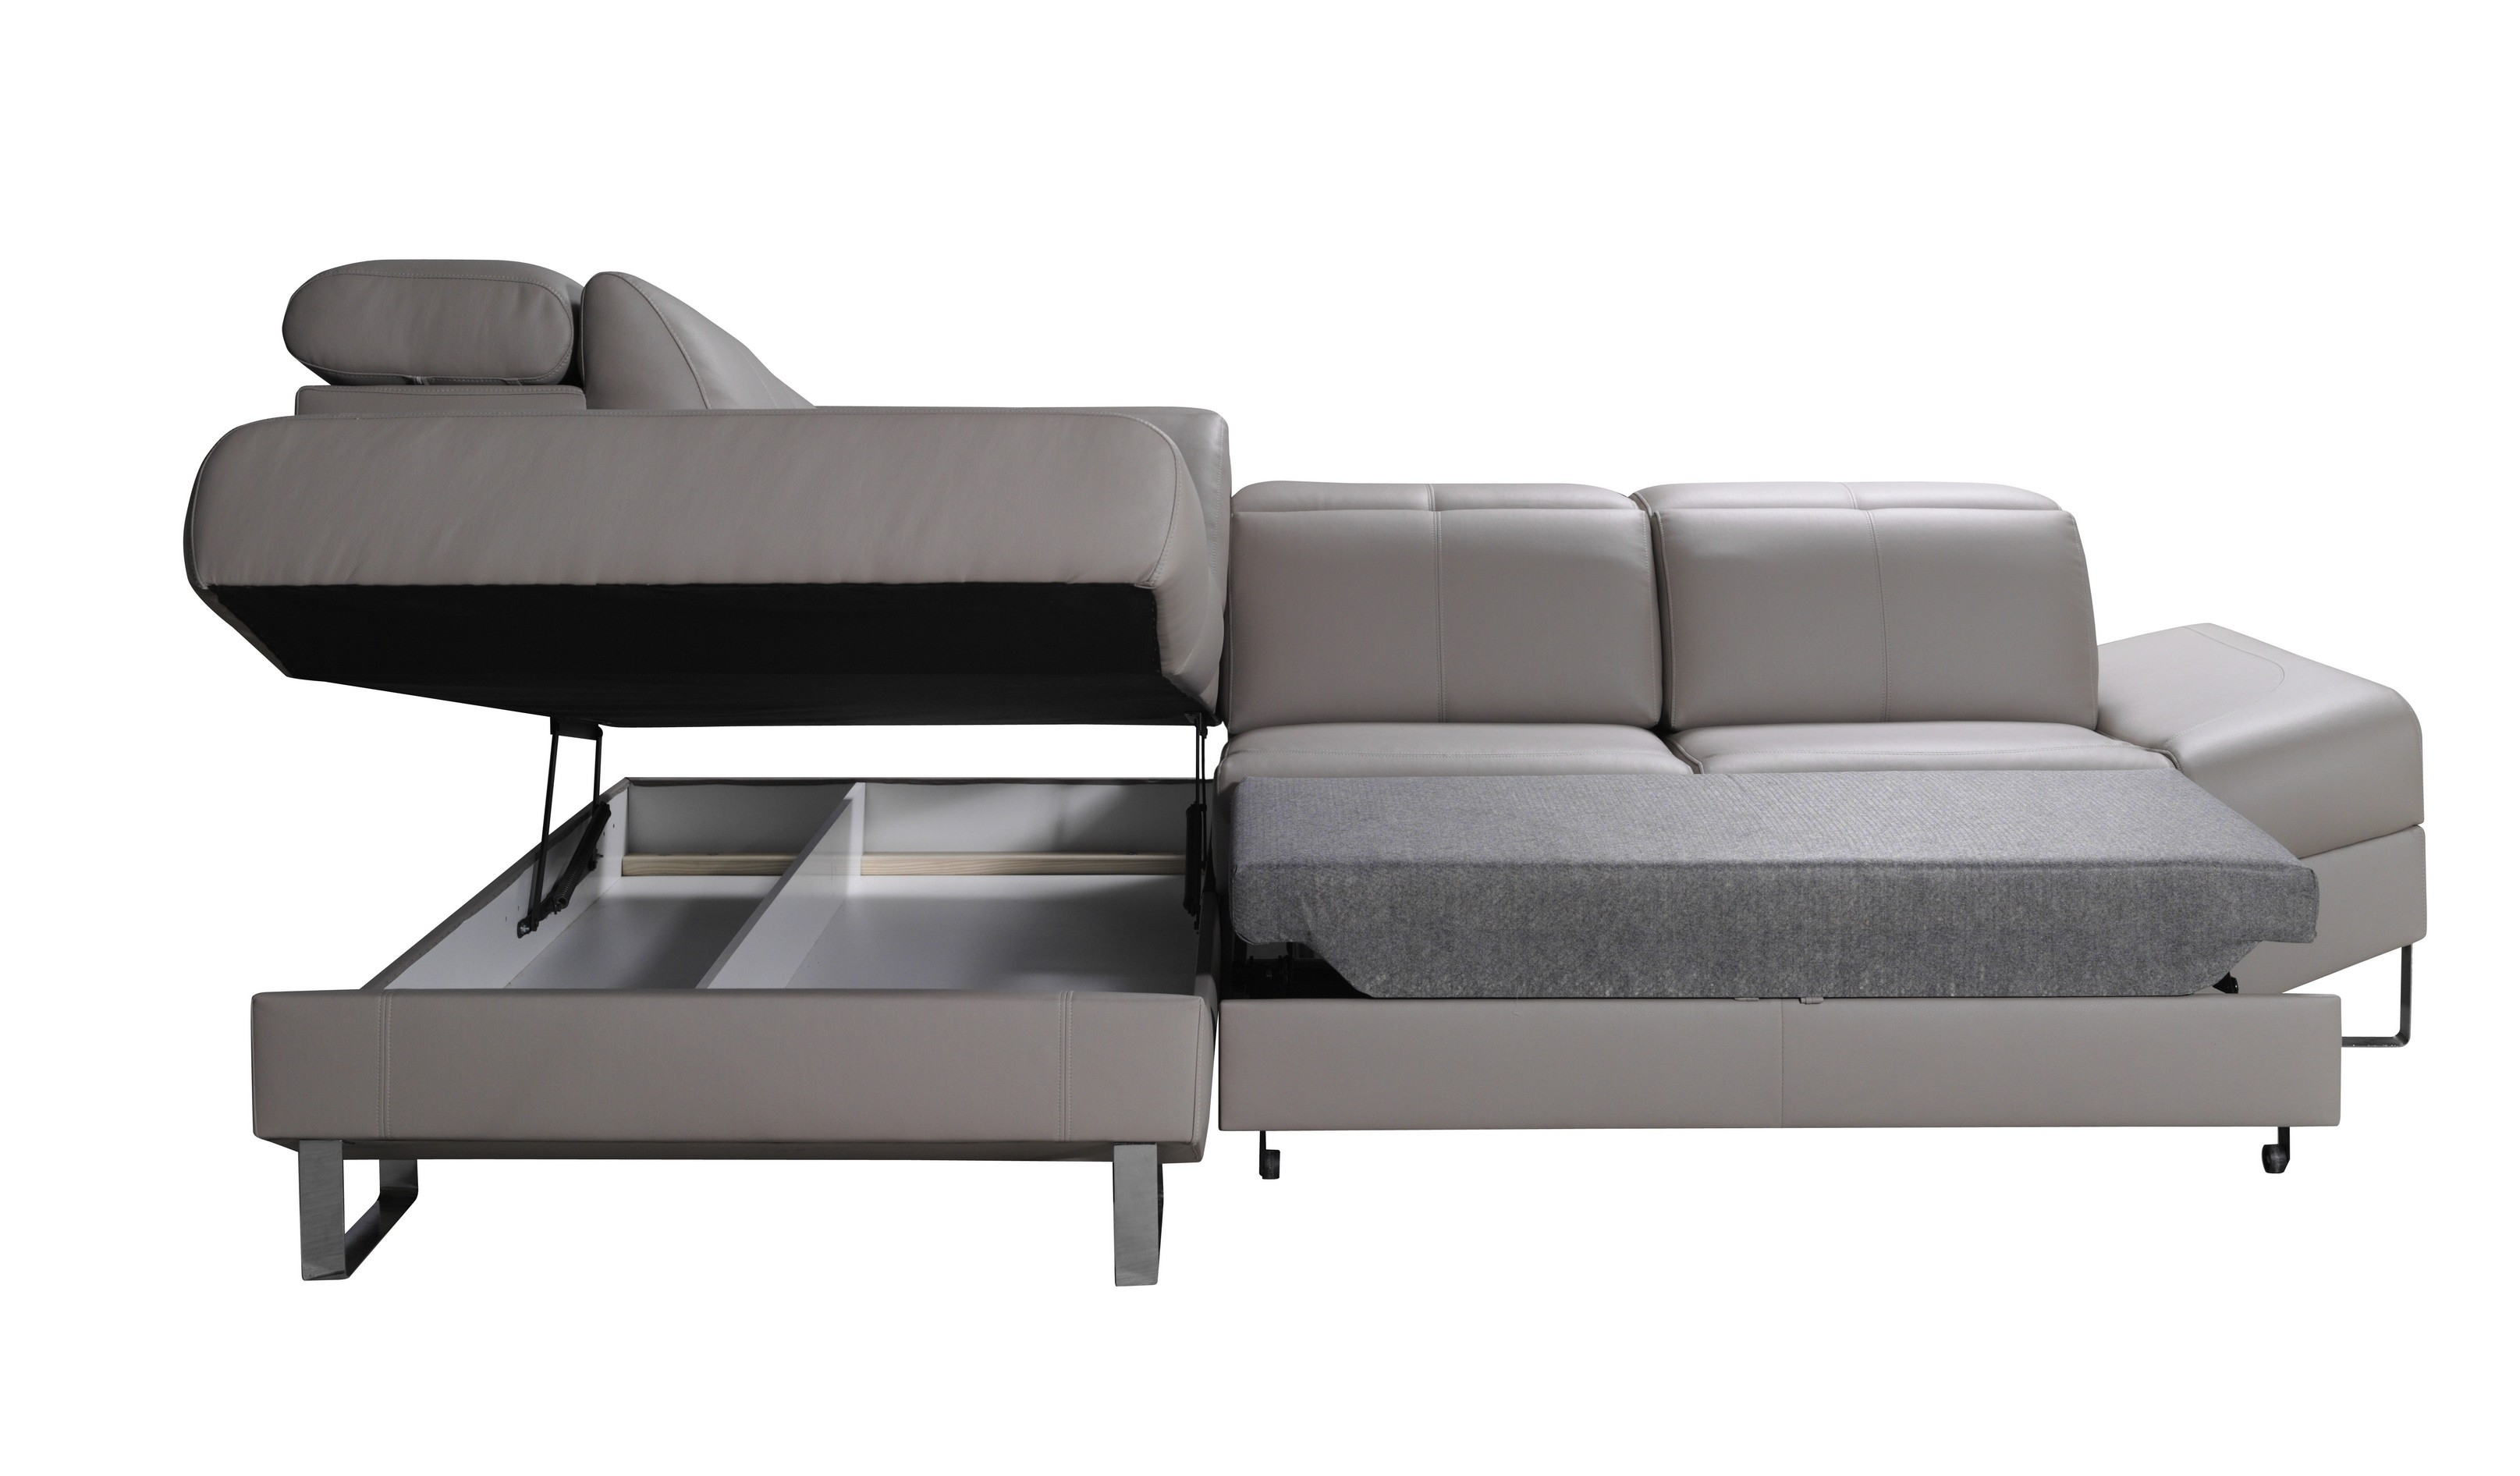 15 Collection of Cool Sleeper Sofas